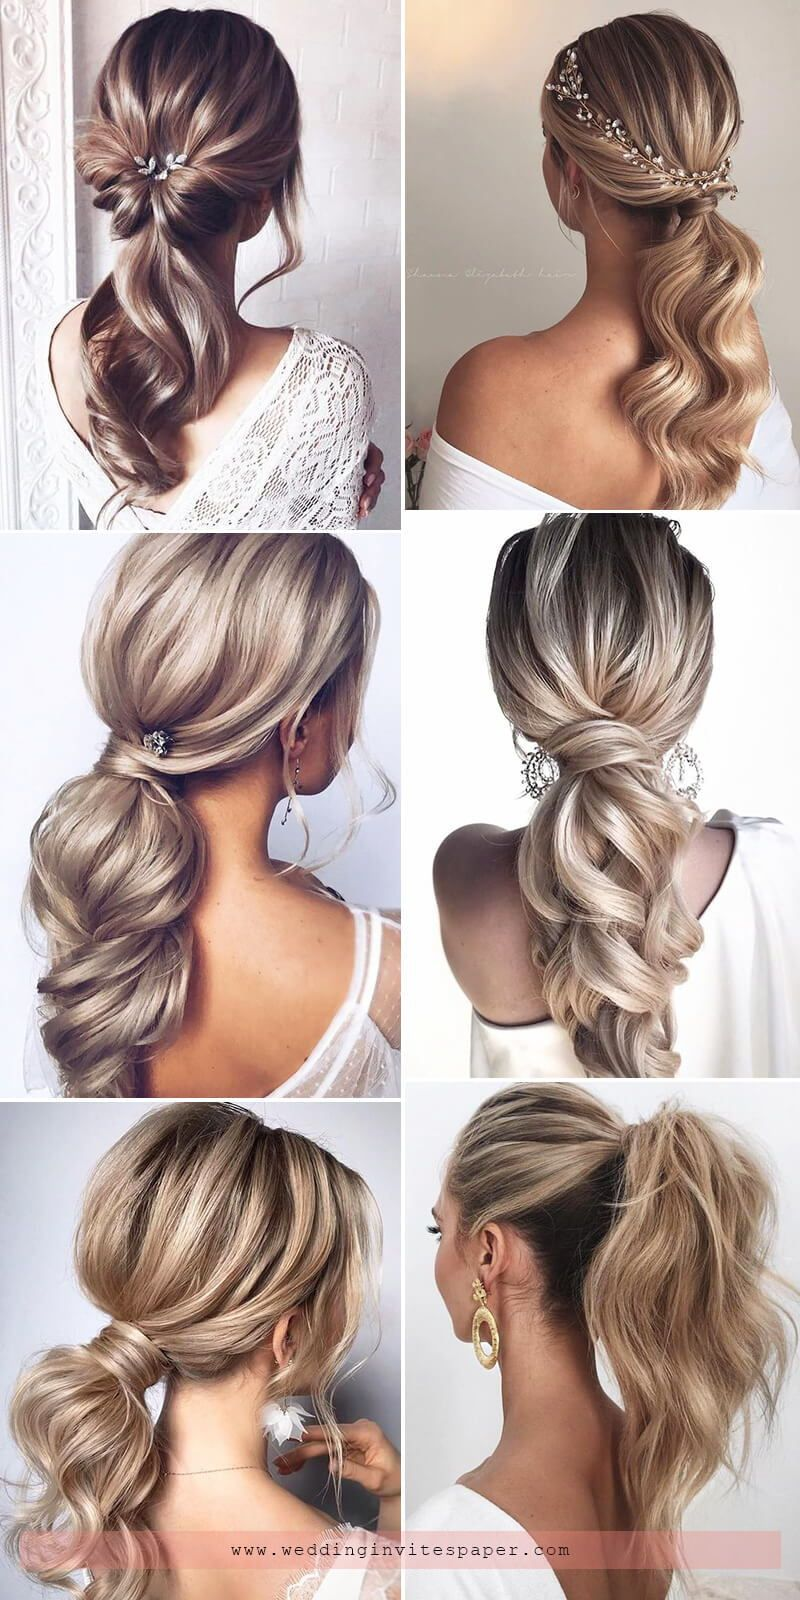 100+ Half Up Half Down Wedding Hairstyles to Swoon Over - Wedding Invites  Paper in 2020 | Wedding hair down, Stylish ponytail, Hair styles